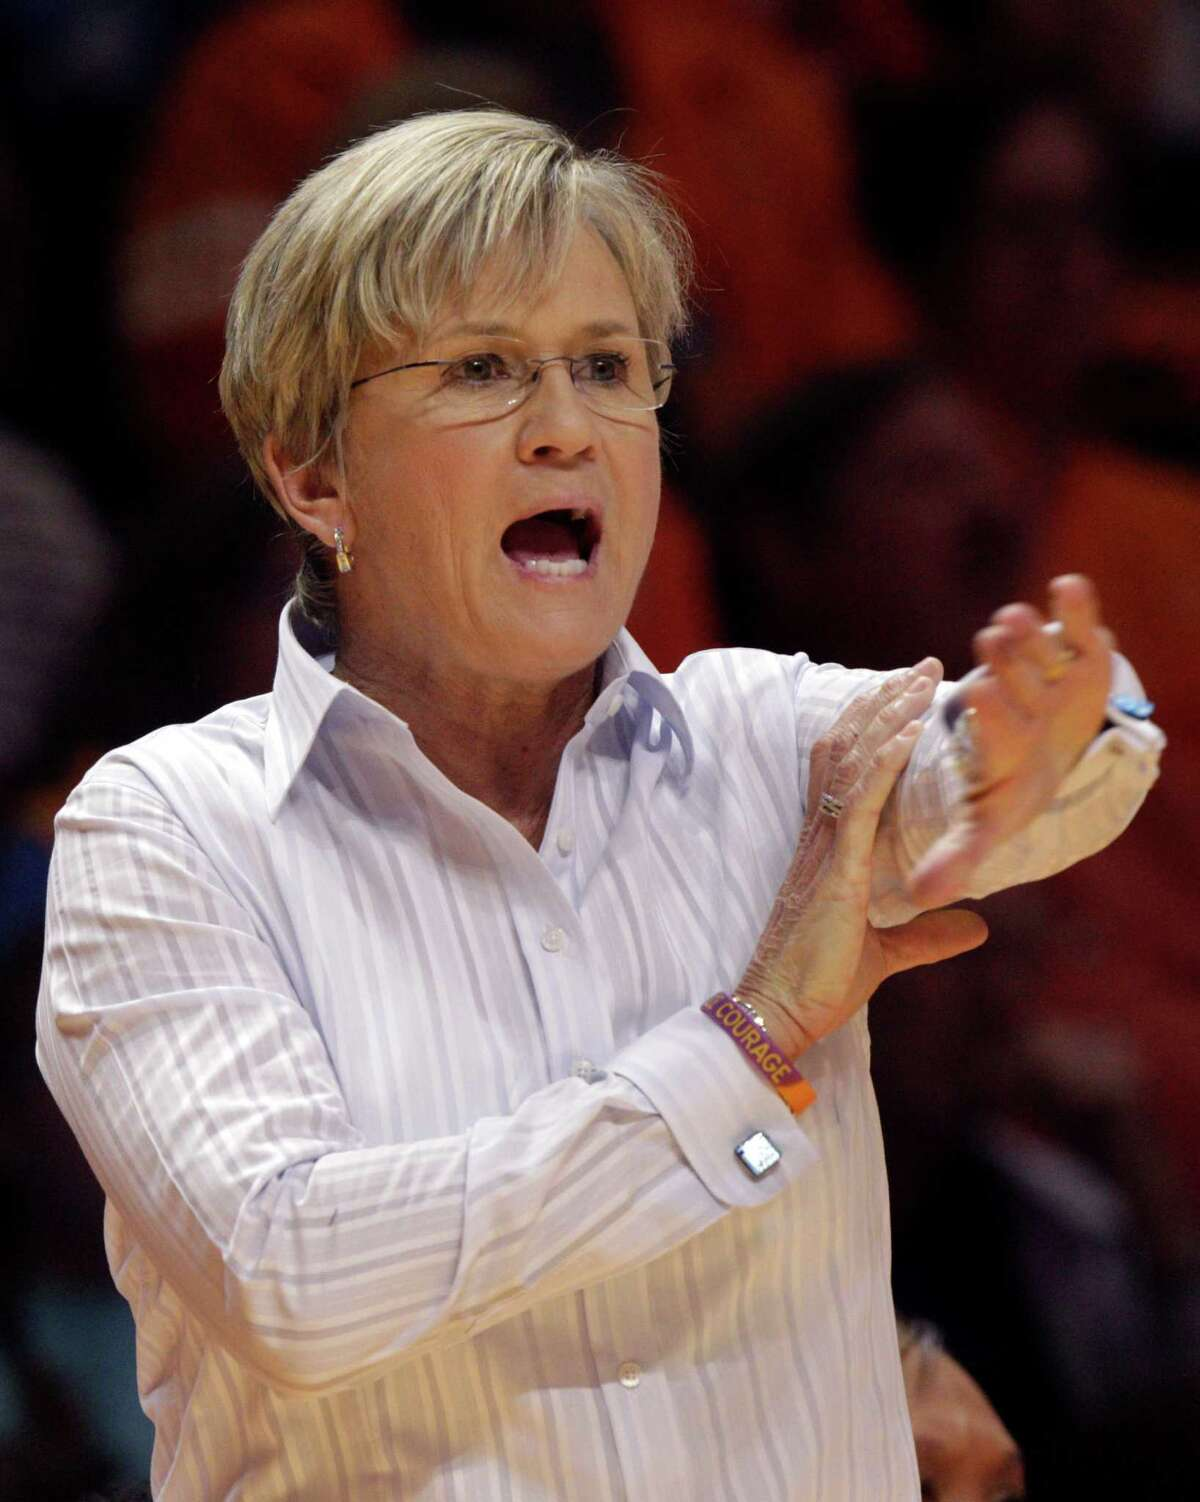 Tennessee head coach Holly Warlick directs her players in the second first half of an NCAA college basketball game against Albany Friday, Nov. 27, 2015, in Knoxville, Tenn. Tennessee won 63-55. (AP Photo/Wade Payne) ORG XMIT: TNWP110